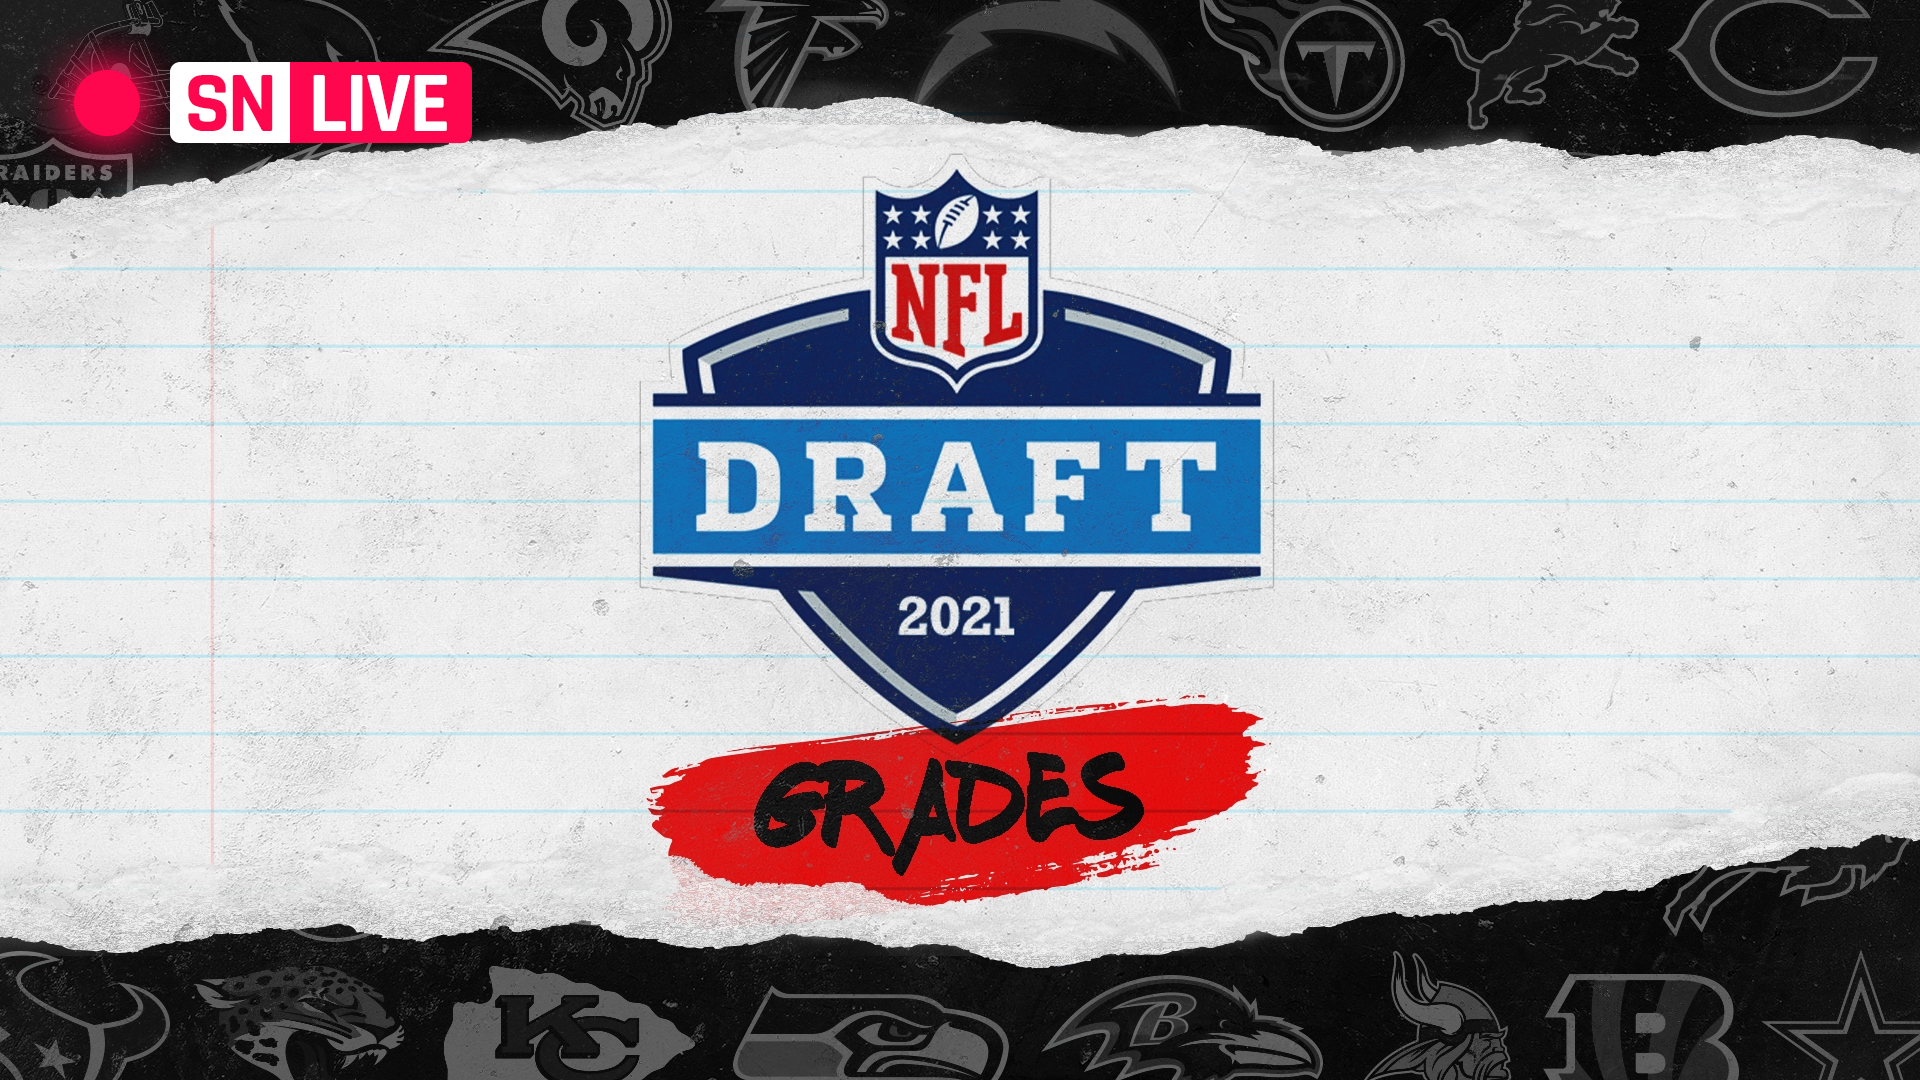 NFL Draft grades 2021: Complete results & analysis for every pick in Rounds 1-3